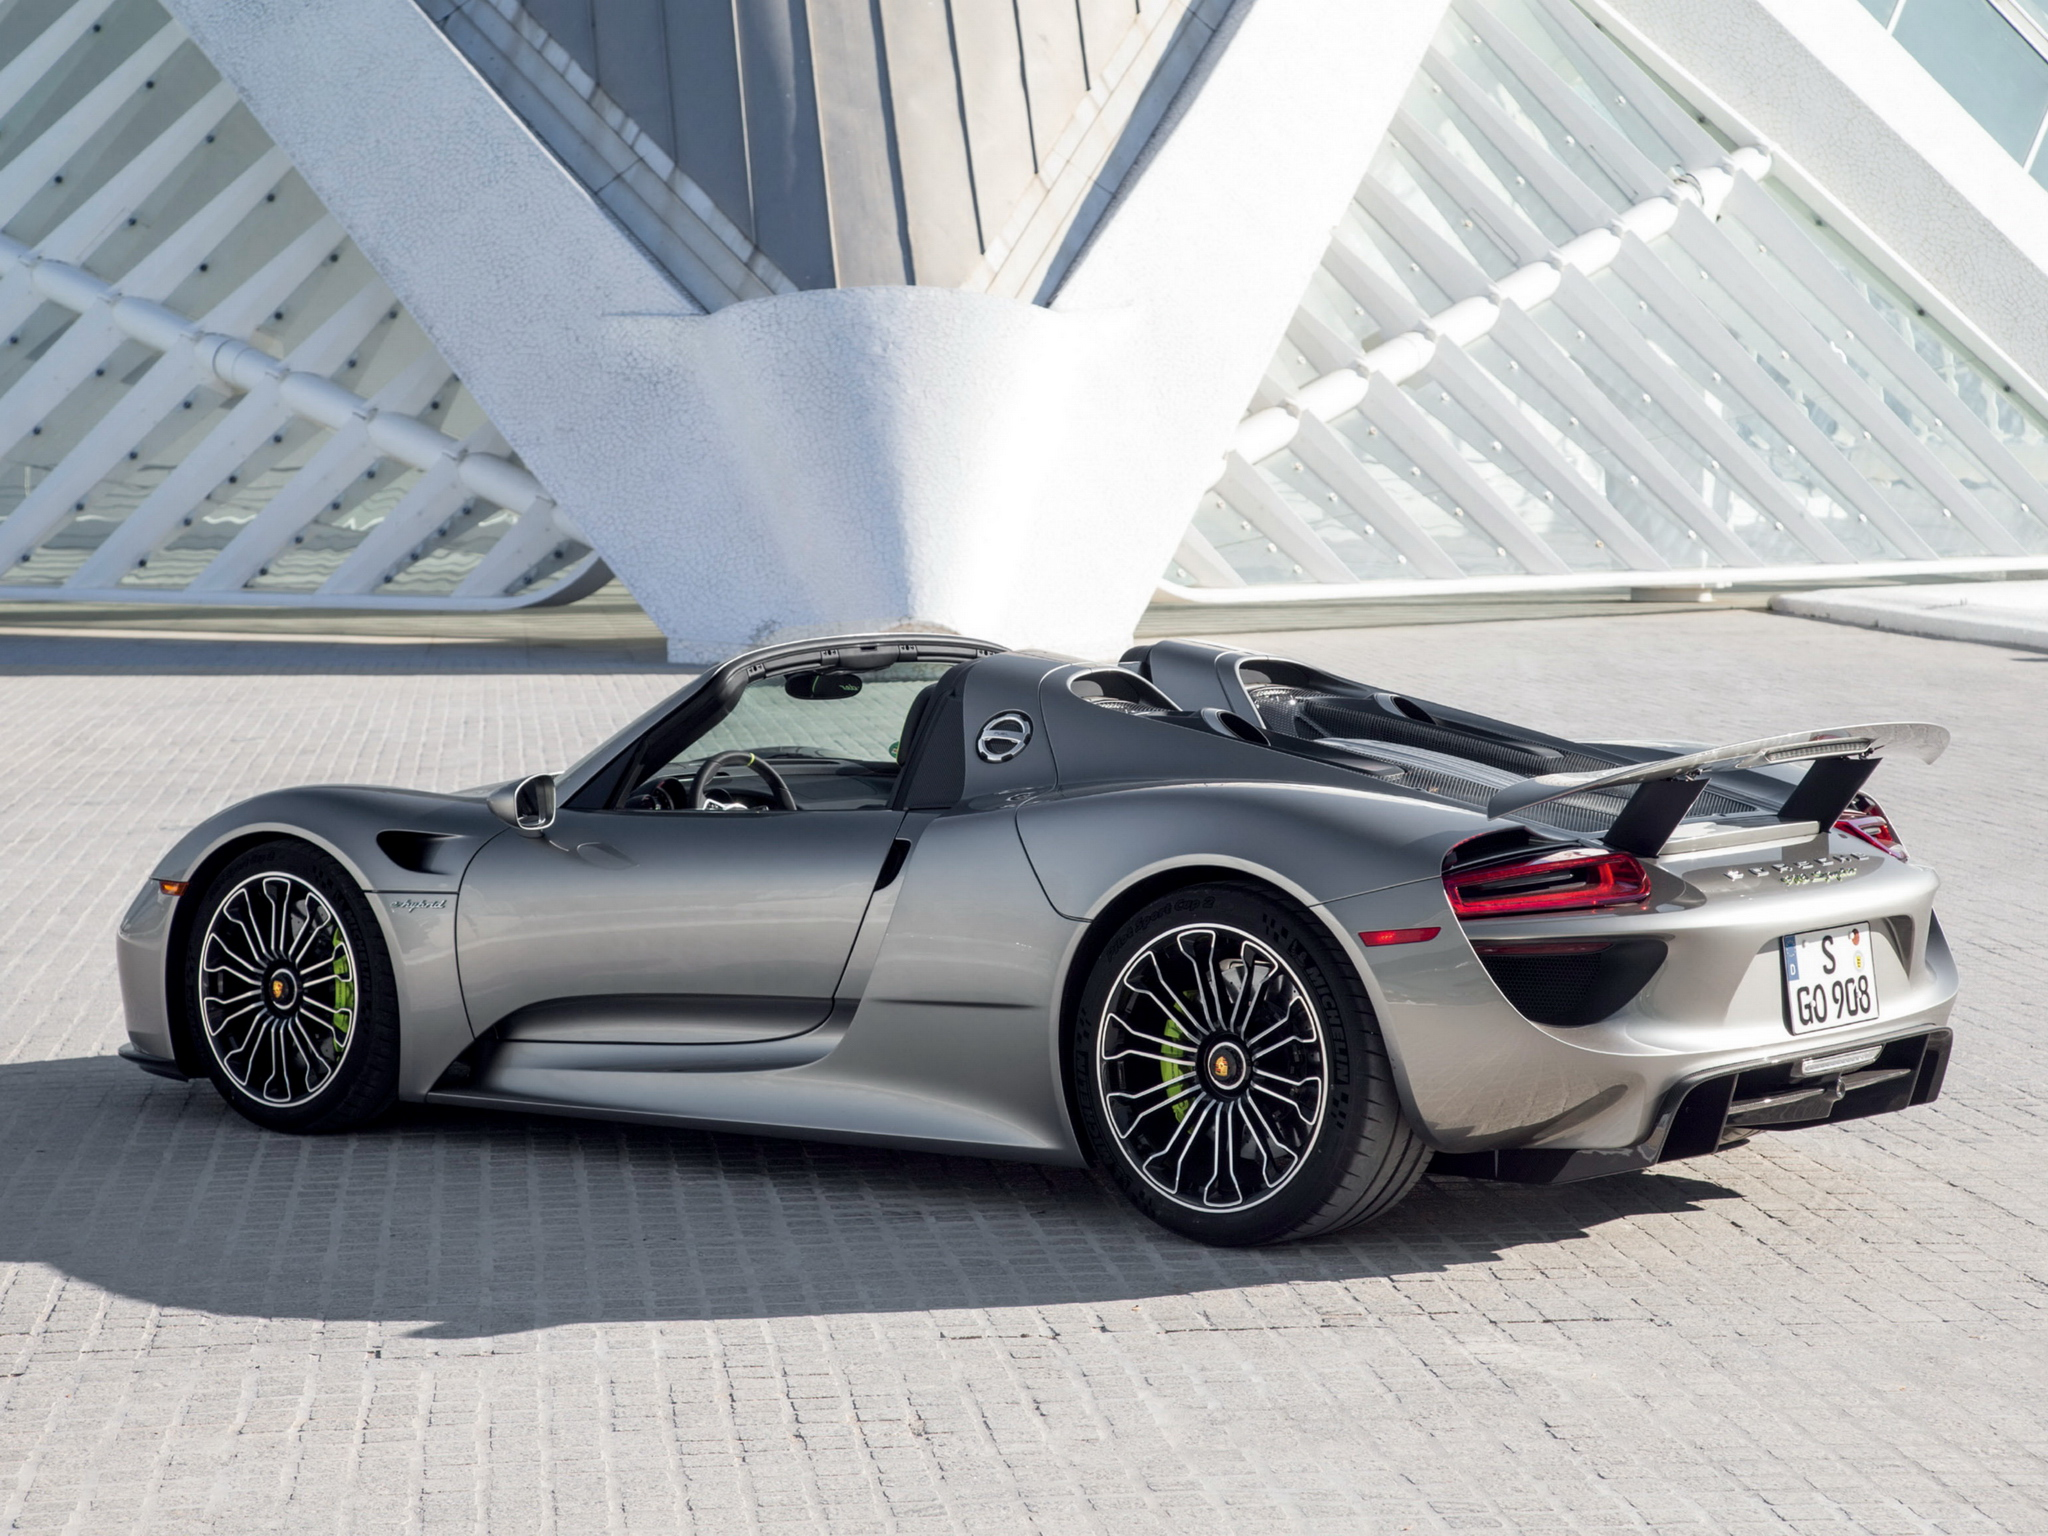 Interesting Porsche 918 Spyder HDQ Images Collection: 39572007, 2048x1536 px